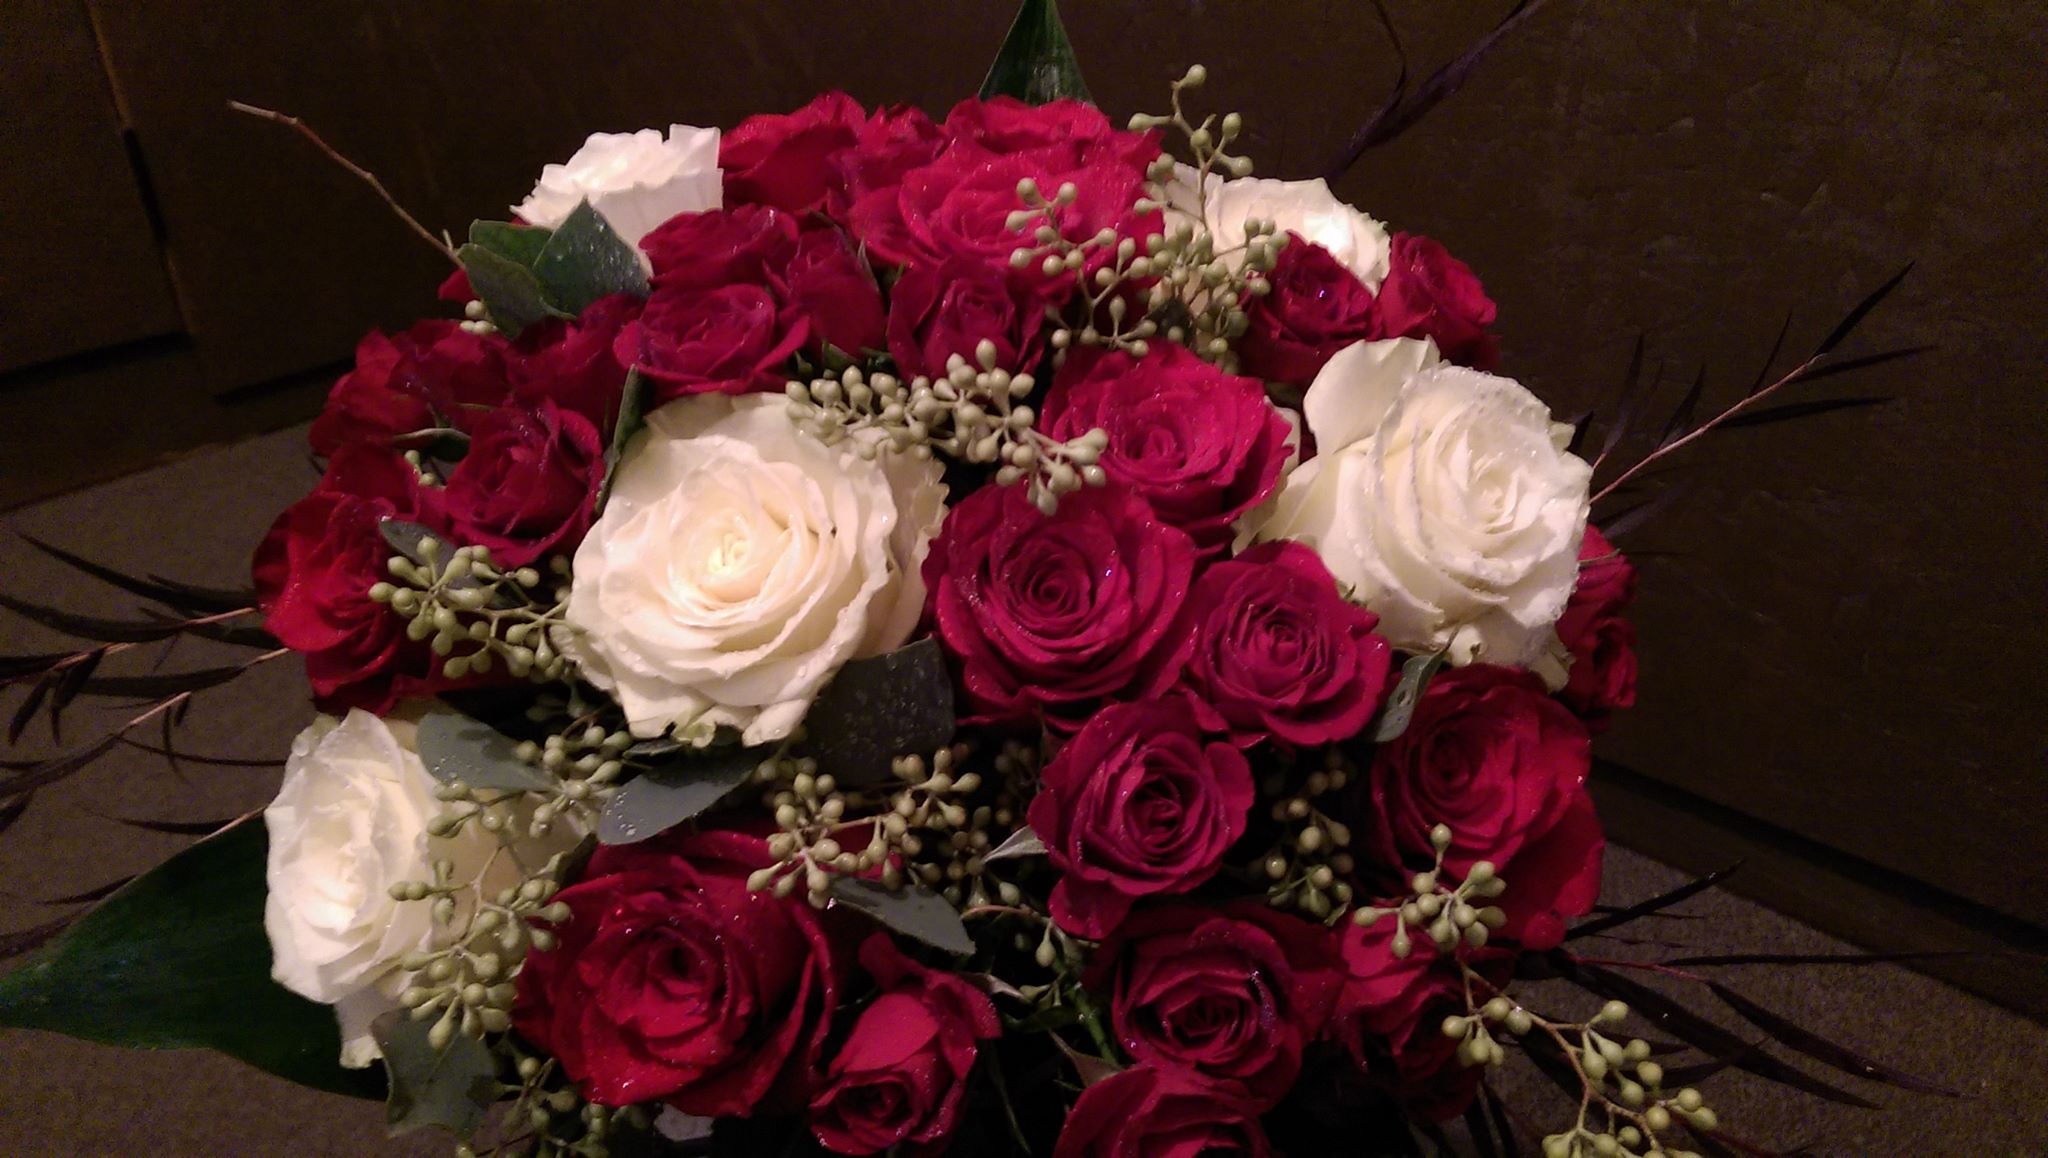 RED & WHITE ROSES (LARGE SIZE BOUQUET) – HEART 2 HEART